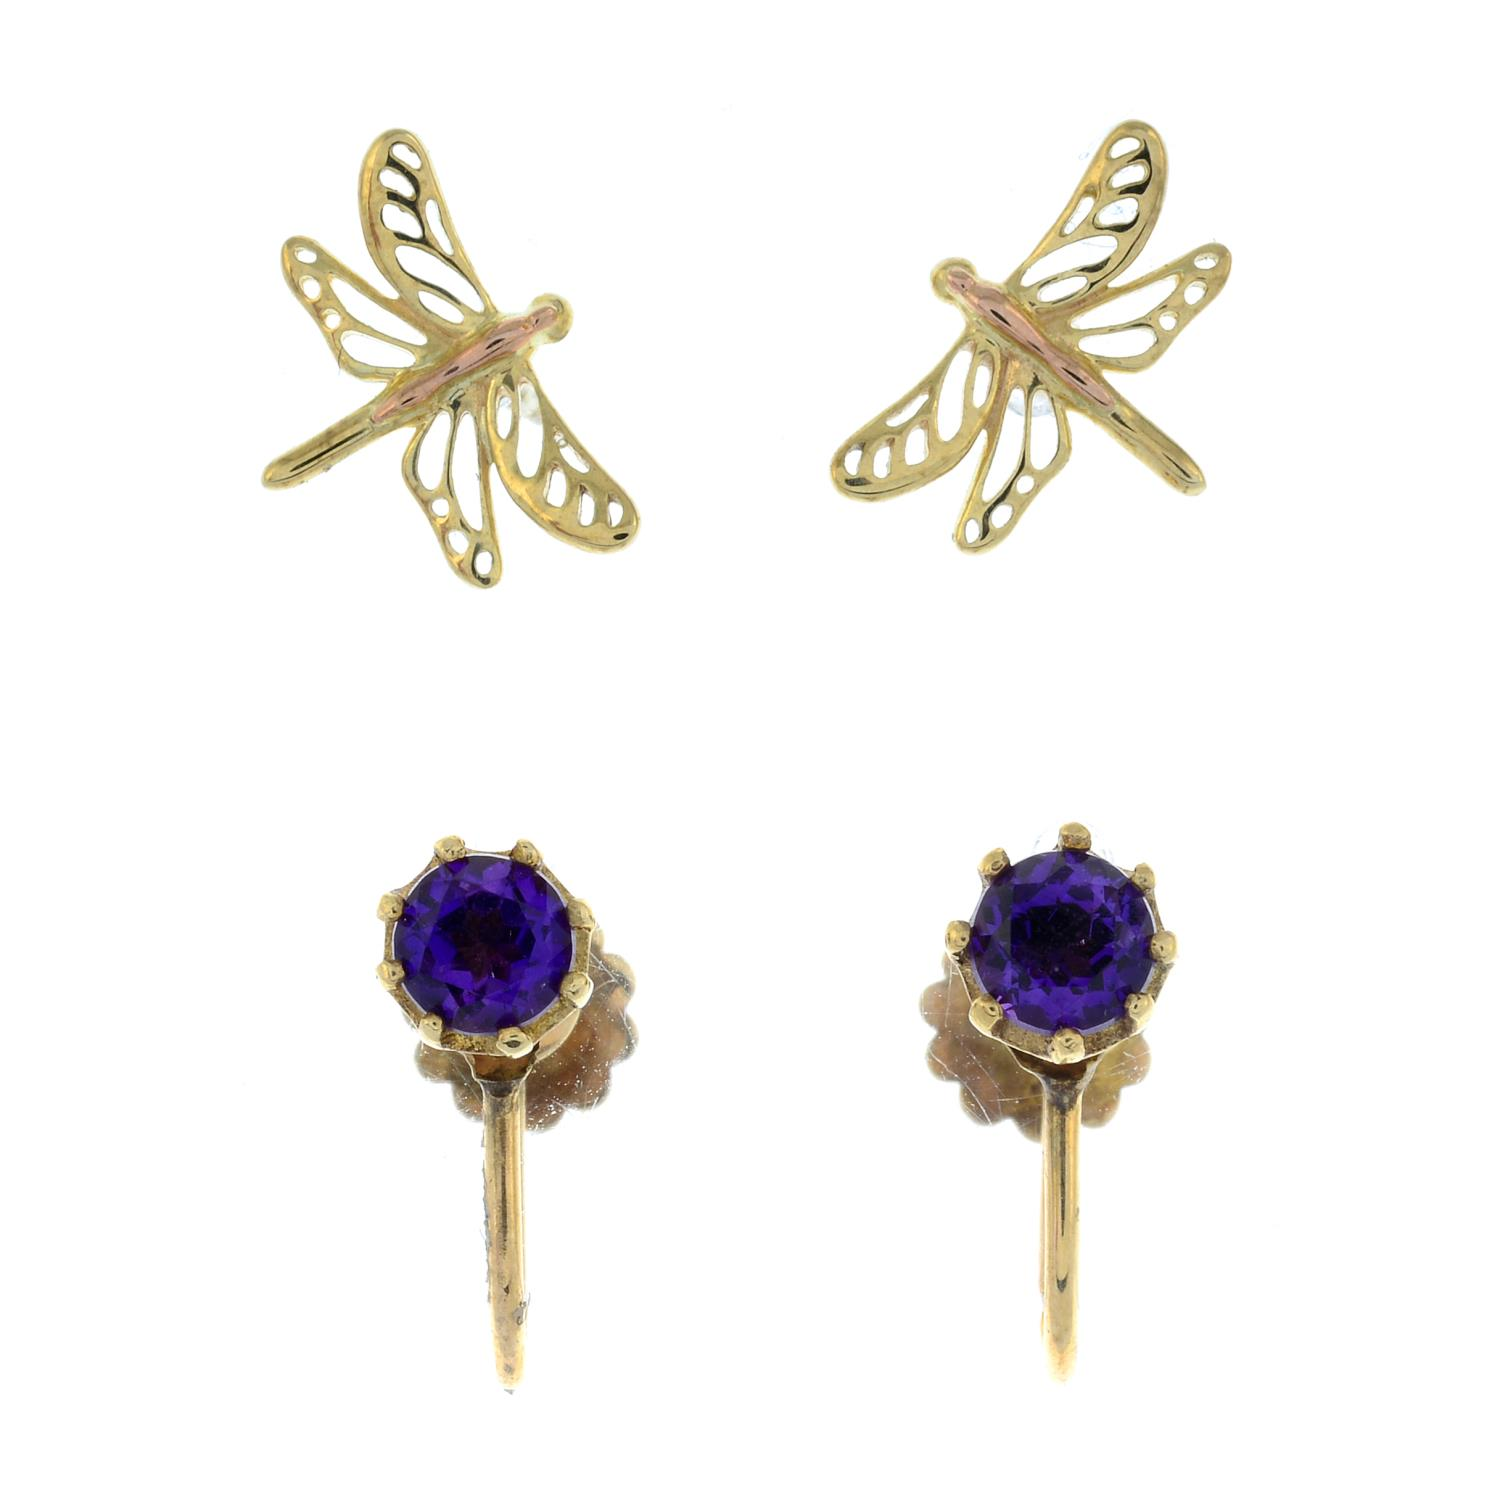 A pair of 9ct gold stud earrings of dragonflies,